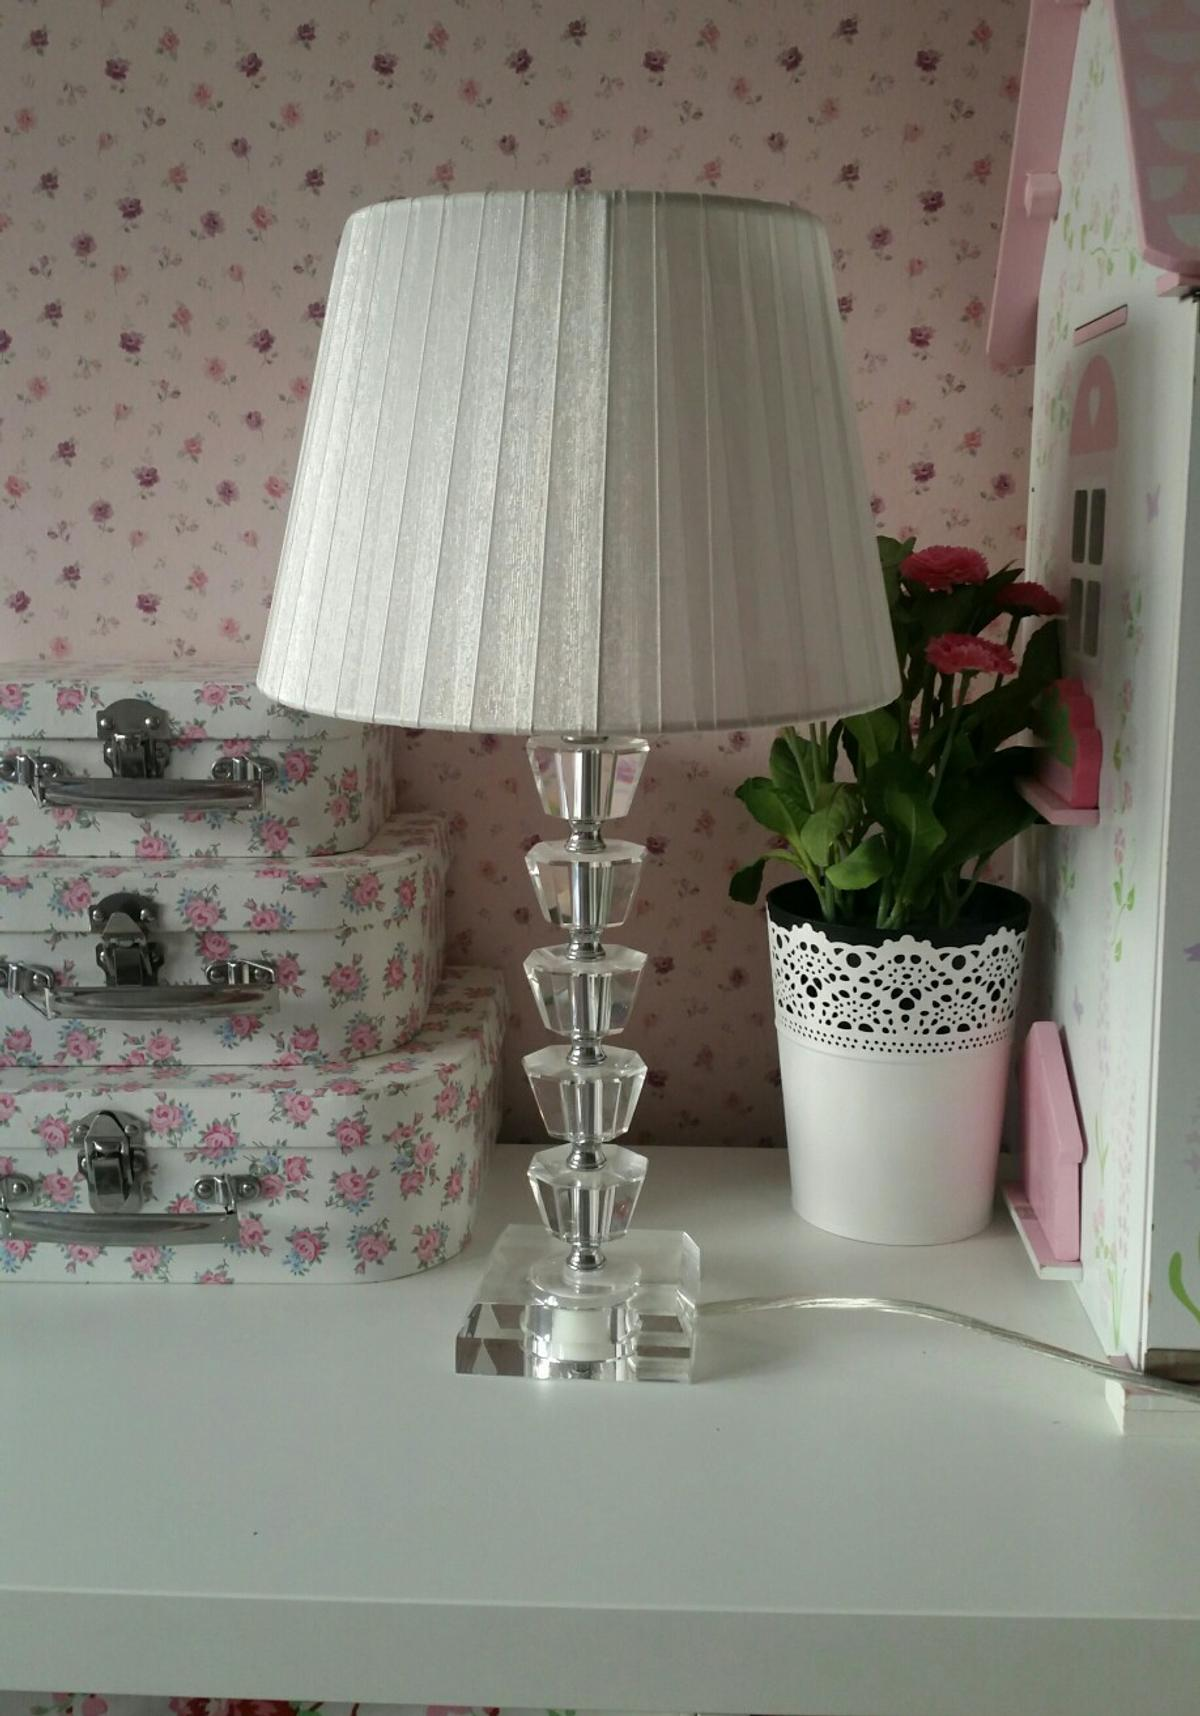 Picture of: Set Of 2 Bhs Glass Table Lamps In Dartford For 20 00 For Sale Shpock